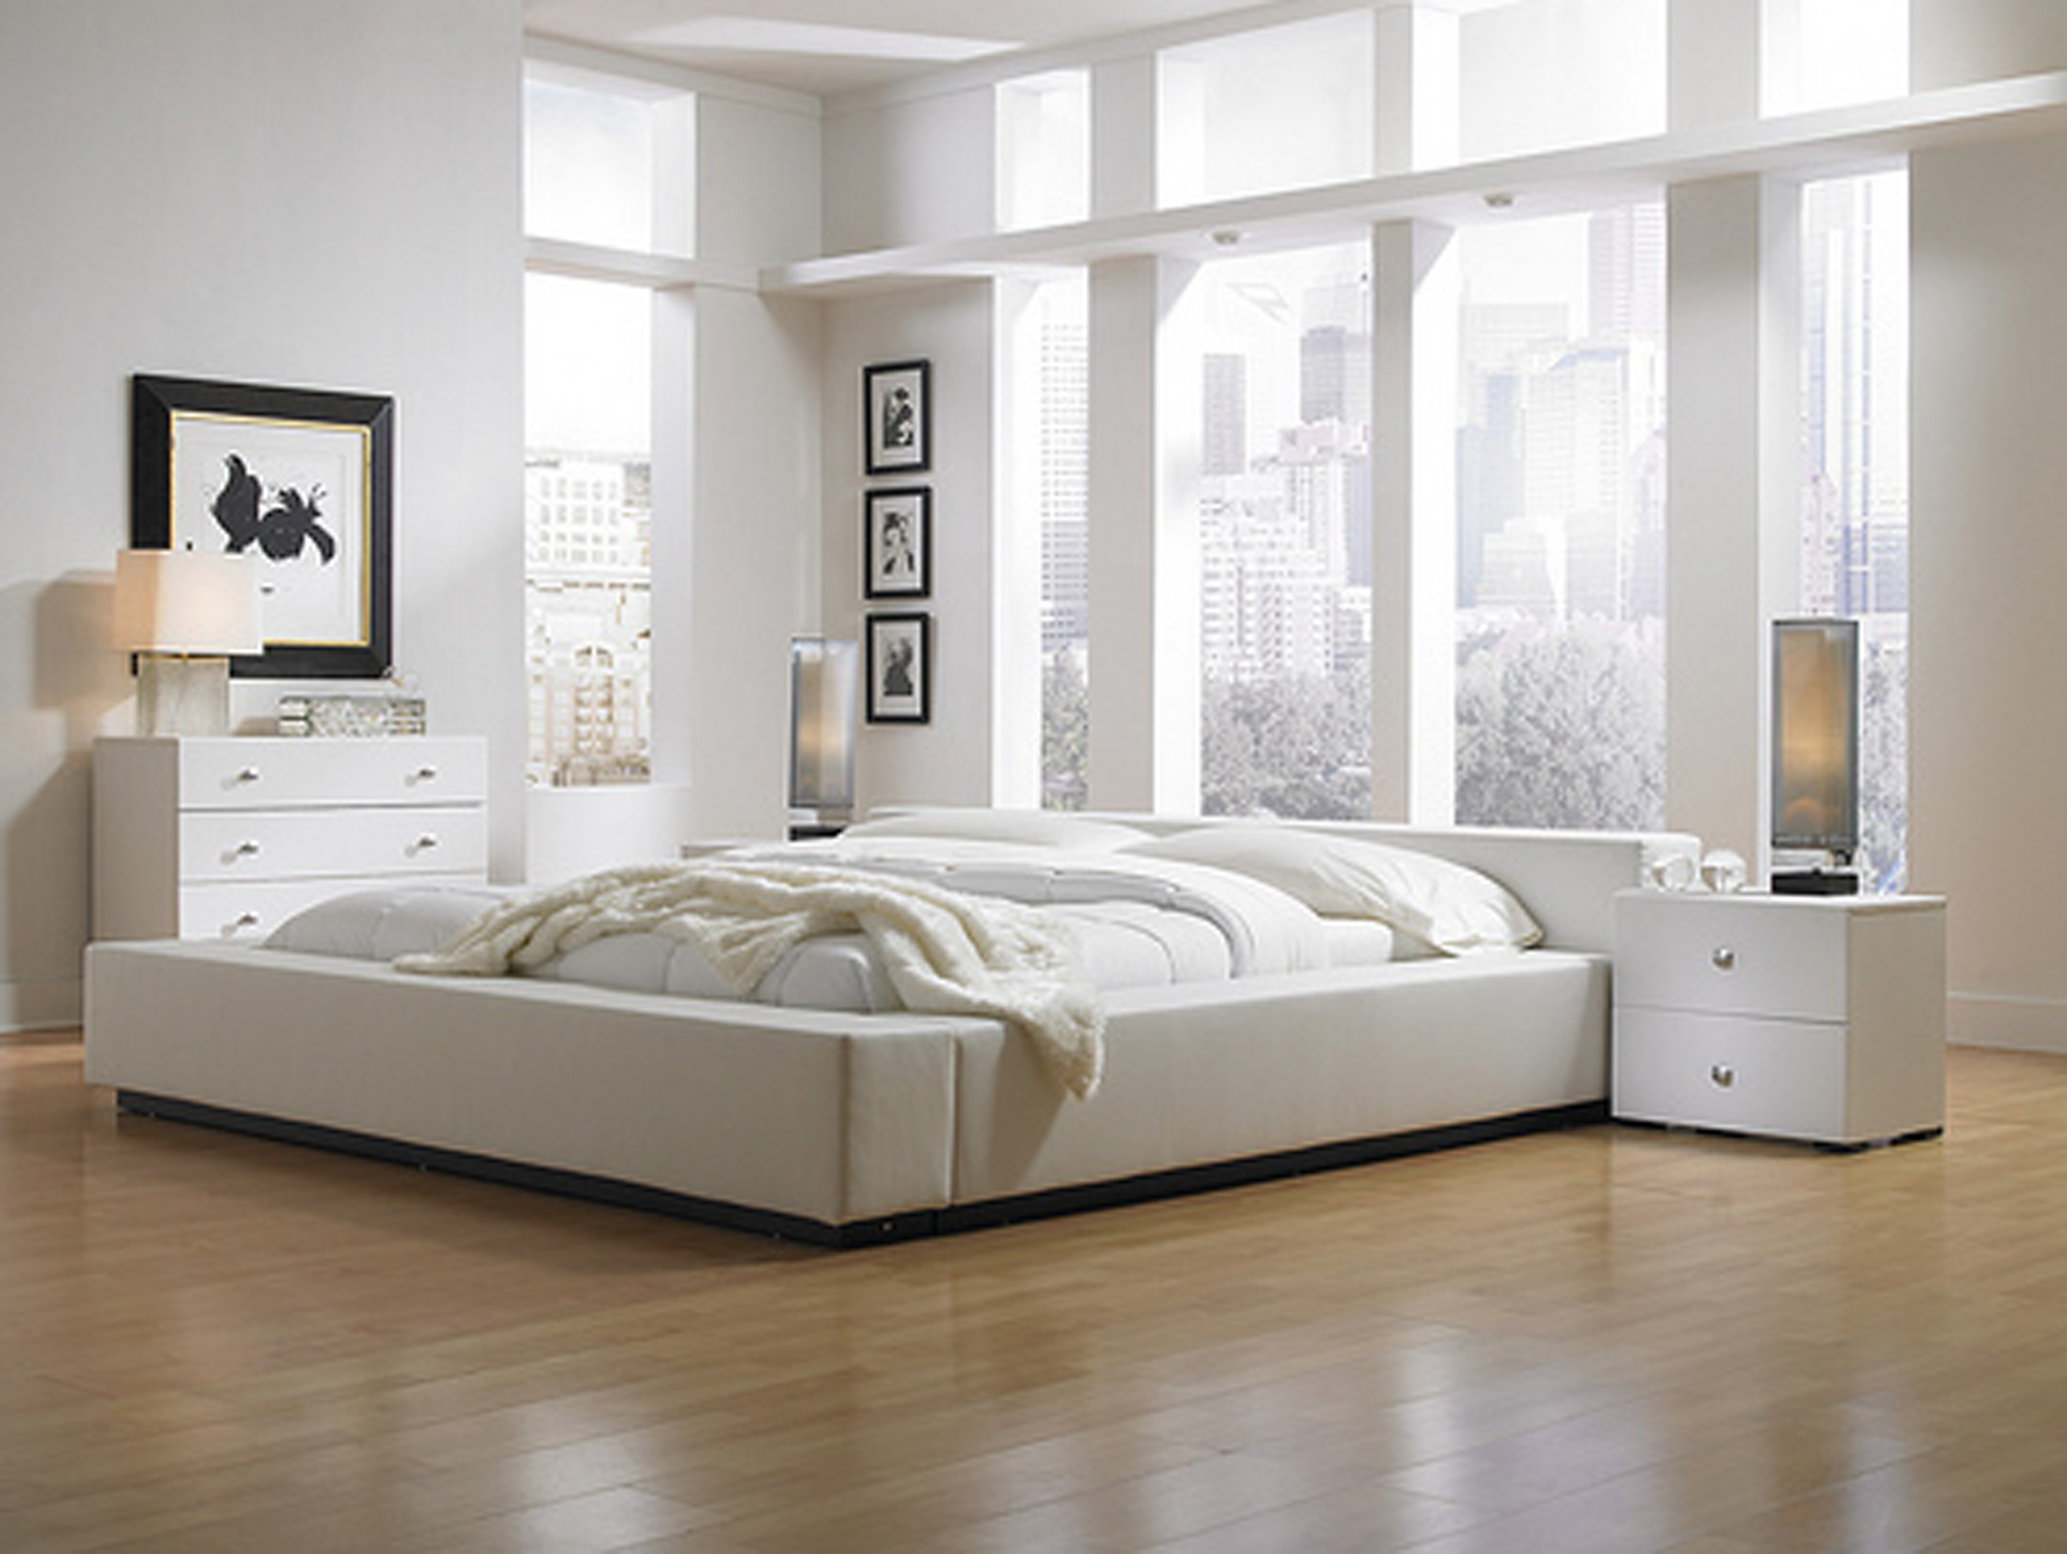 Modern White Master Bedroom Furniture Ideas For Interior Decoration Hgnv Com